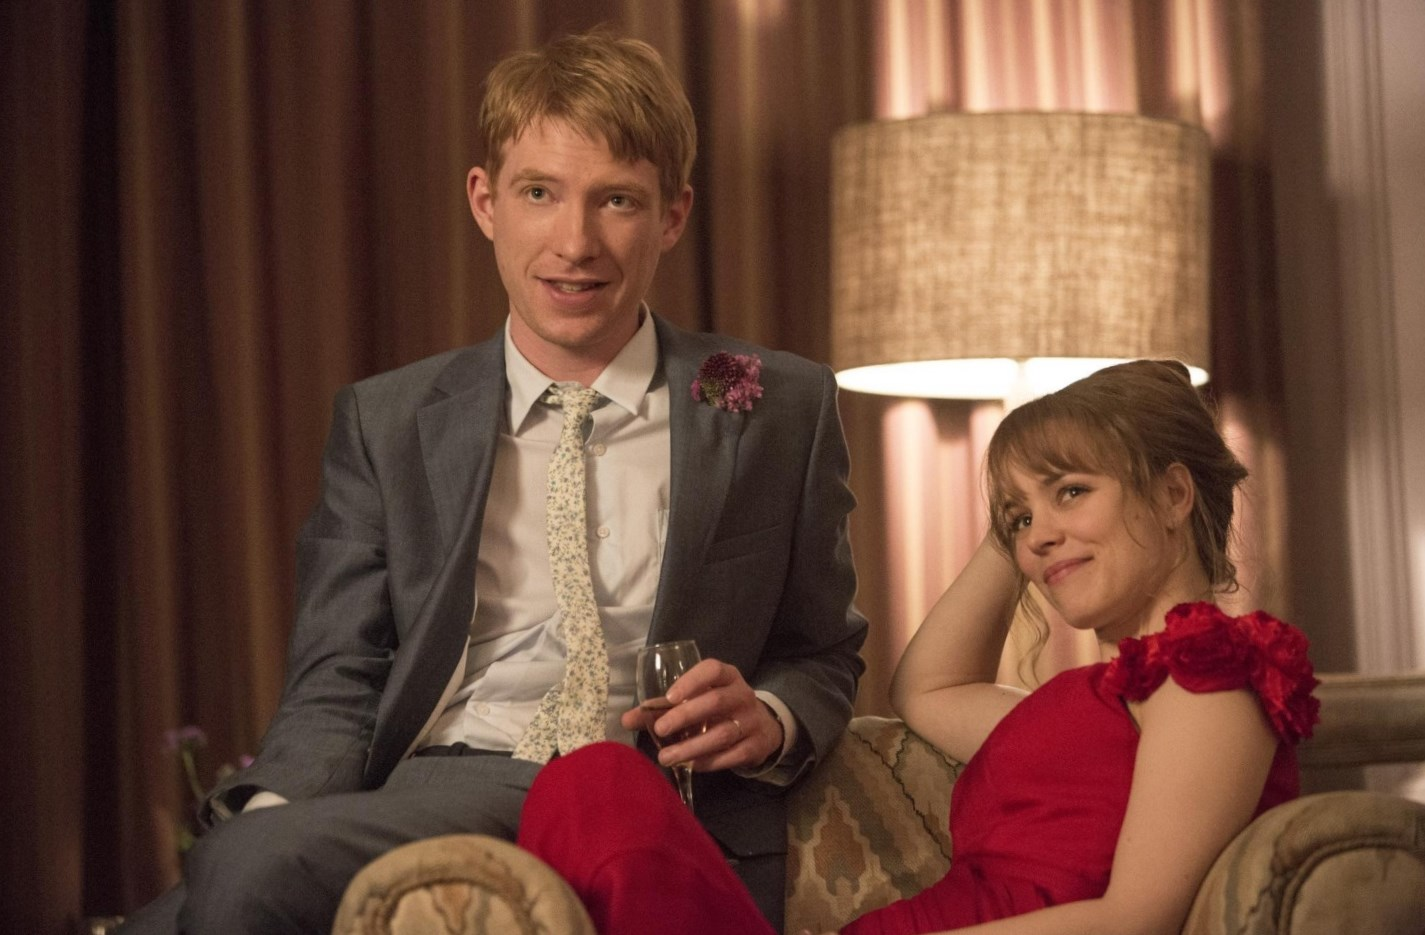 Domhnall Gleeson - Best Movies & TV Shows